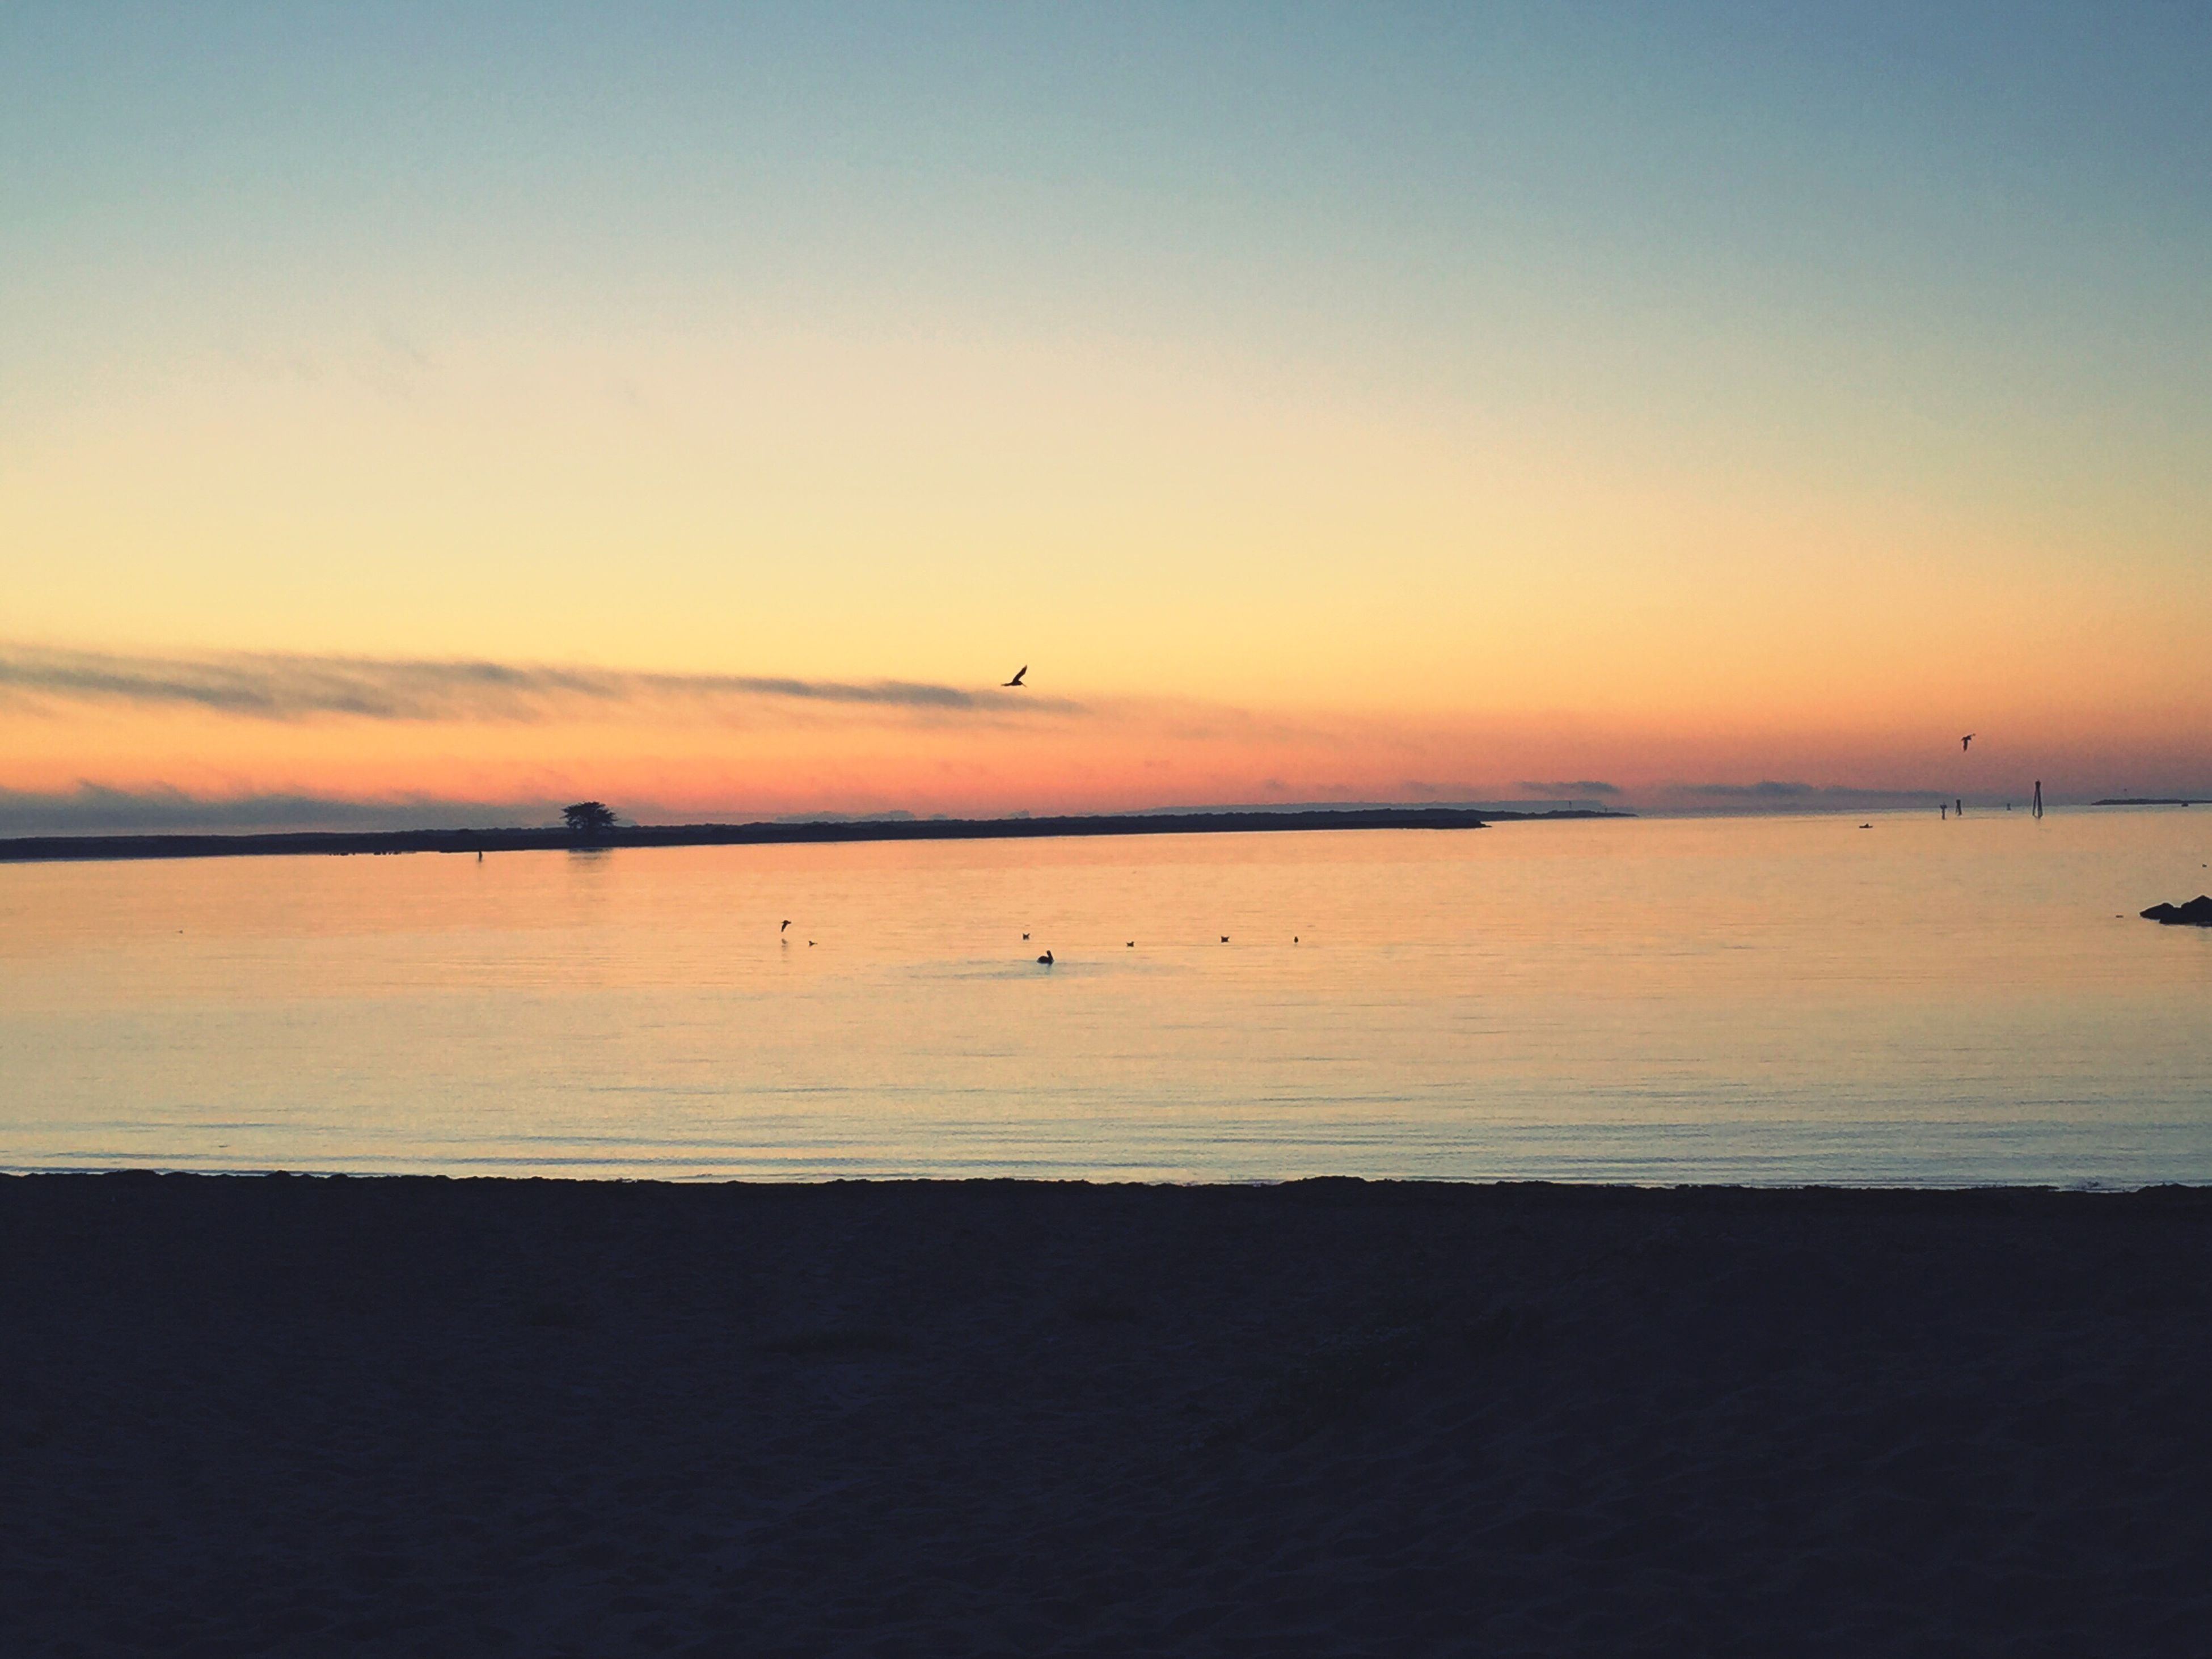 sunset, sea, water, scenics, tranquil scene, tranquility, beauty in nature, horizon over water, sky, orange color, nature, idyllic, outdoors, calm, non-urban scene, no people, remote, blue